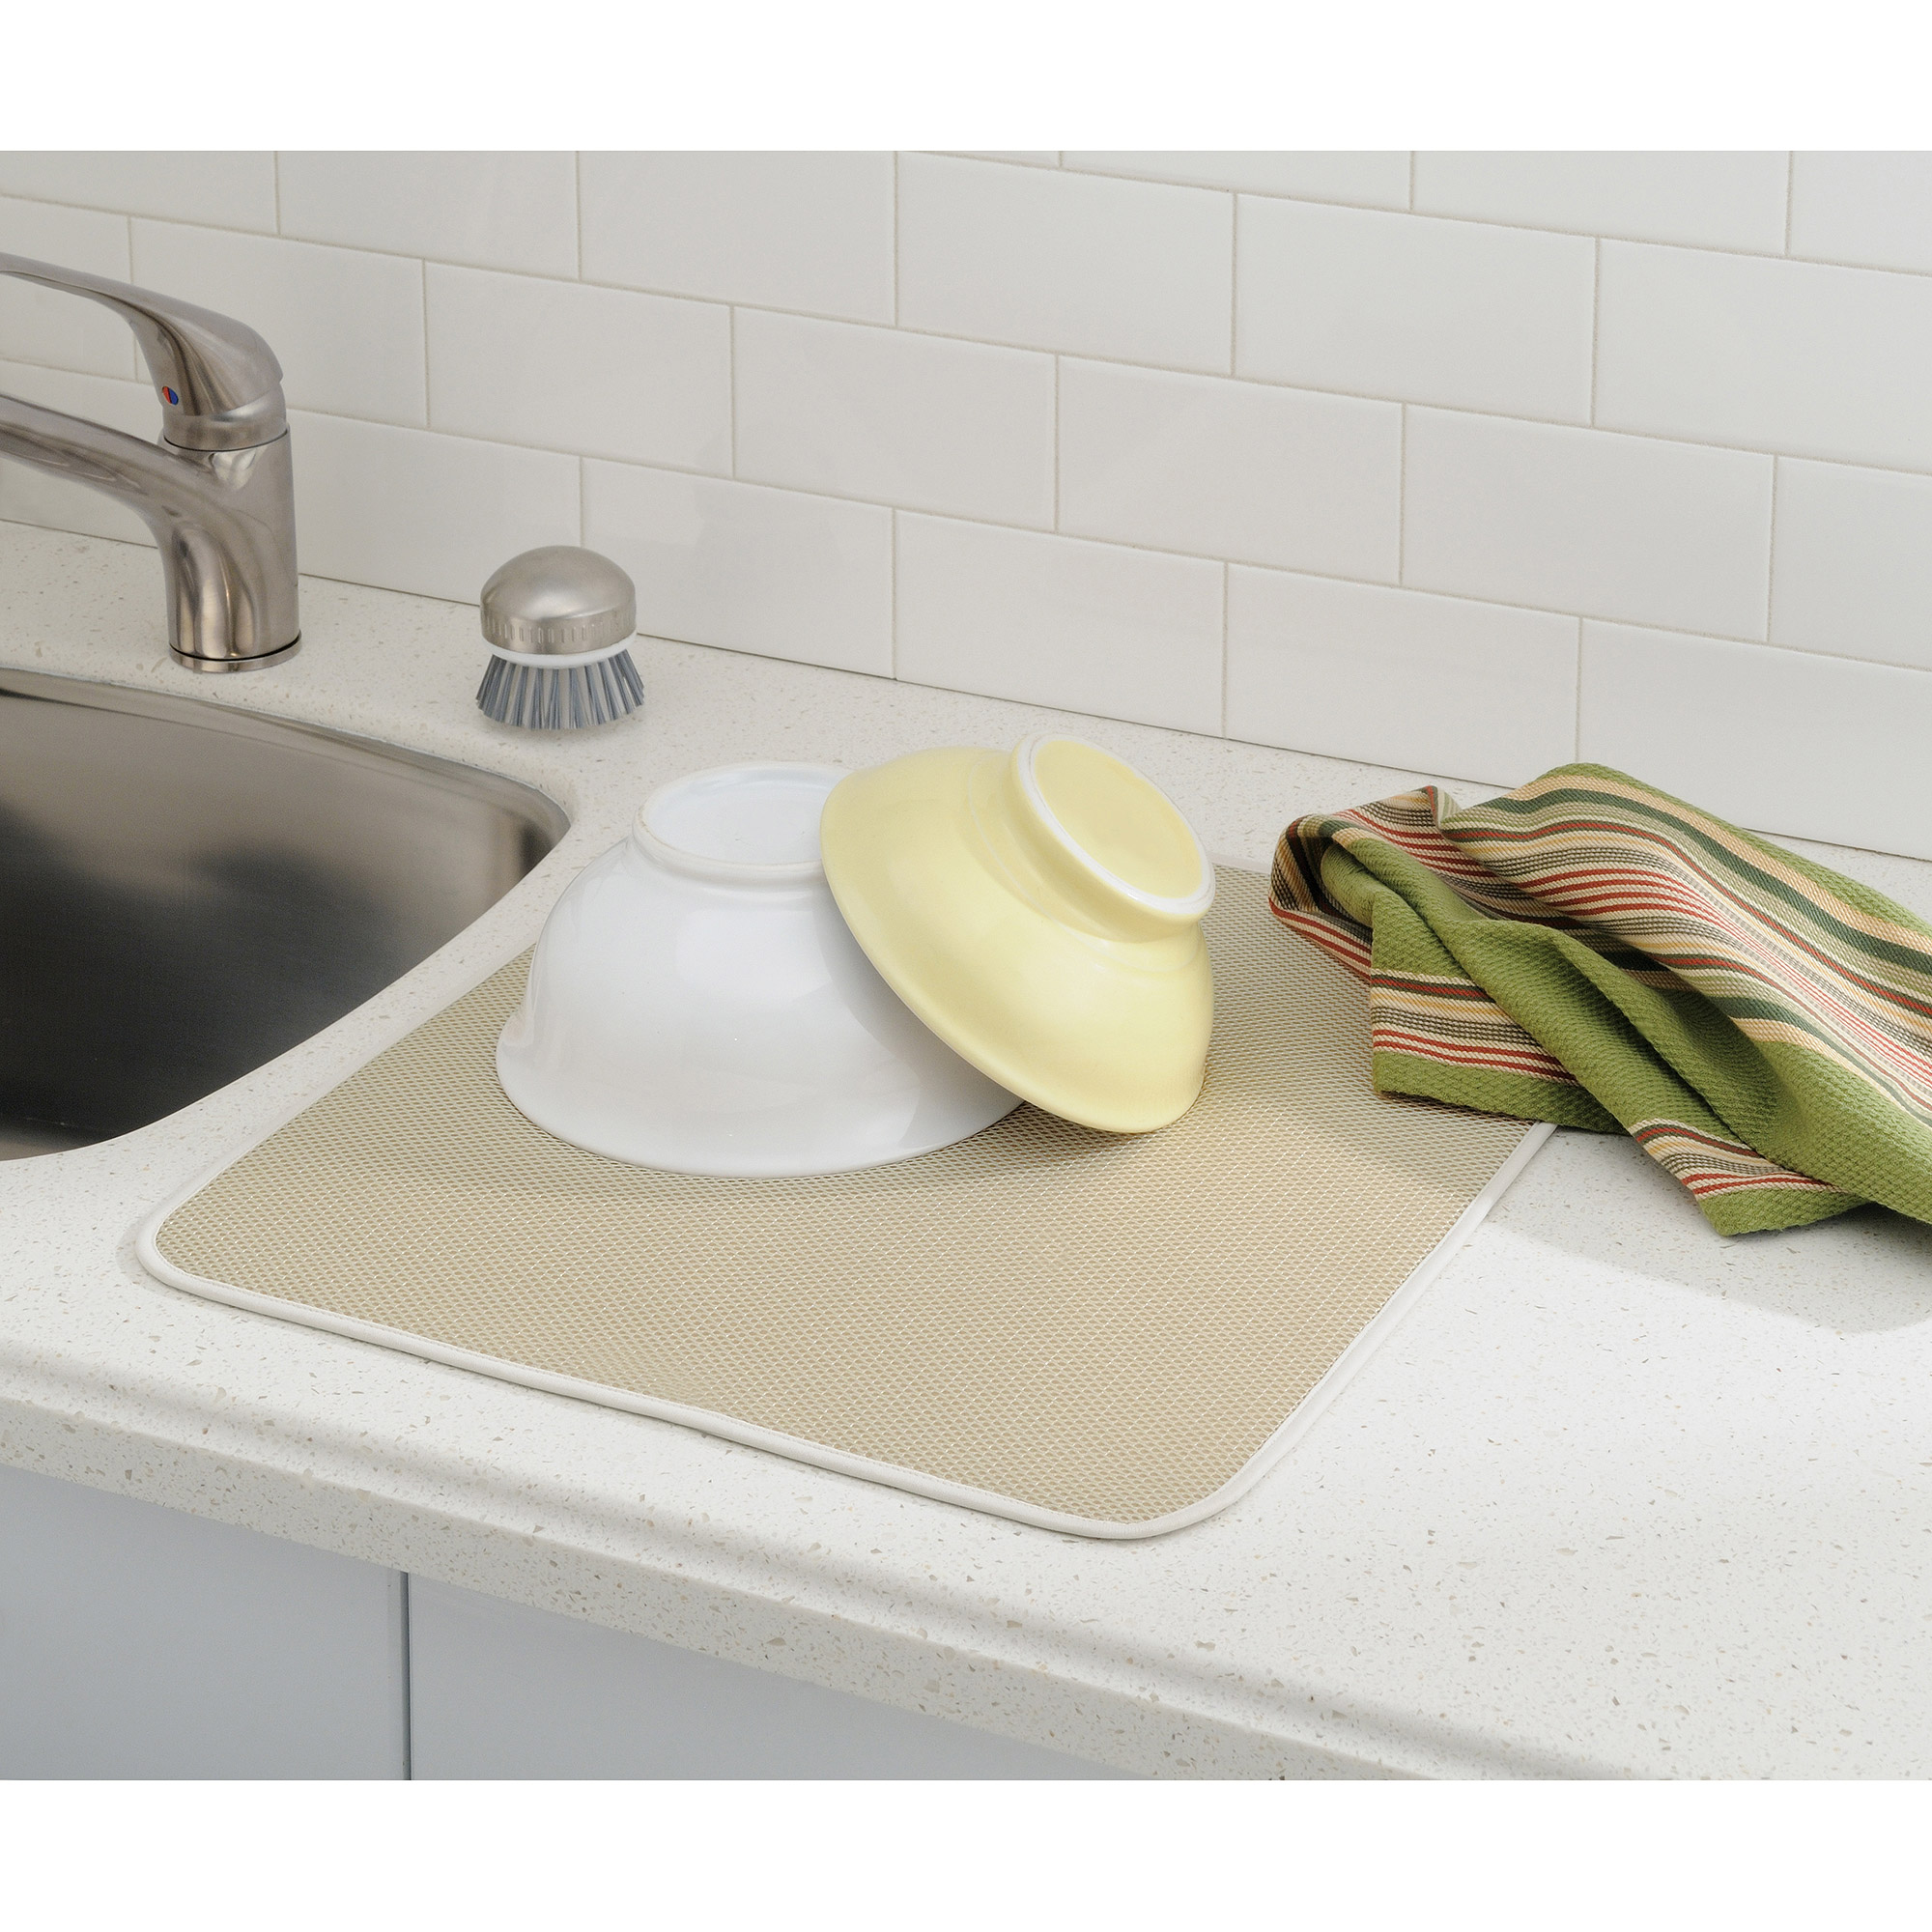 interdesign syncware kitchen sink protector mat, large, black